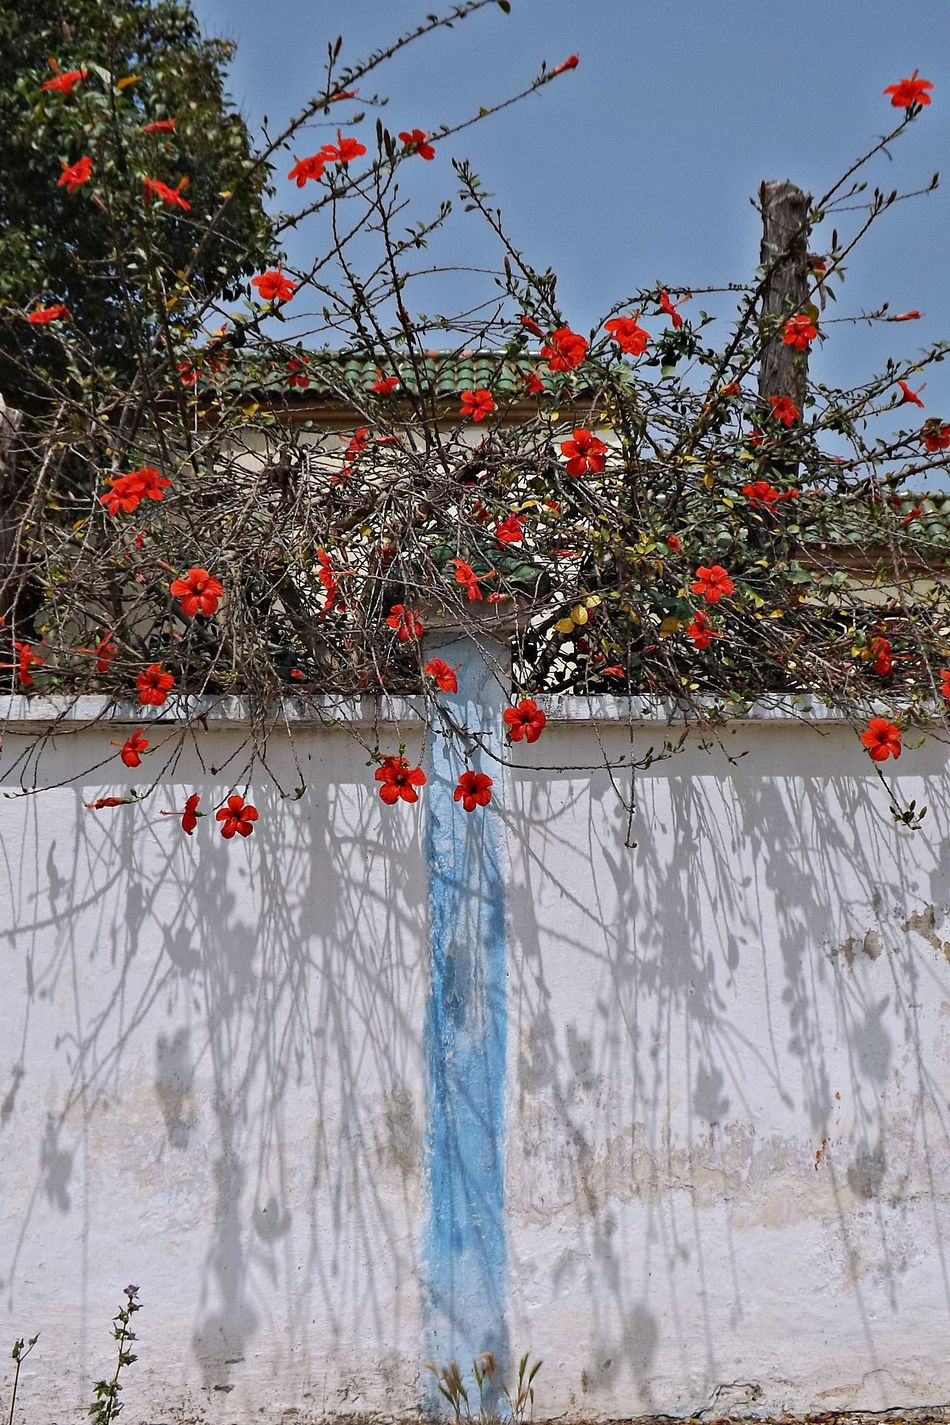 Beauty In Nature Blossom Branch Cold Temperature Day Flower Fragility Freshness Growth Hanging Low Angle View Mur Nature No People Ombre Outdoors Plant Red Rouge Siege Snow Springtime Toit Tree Winter